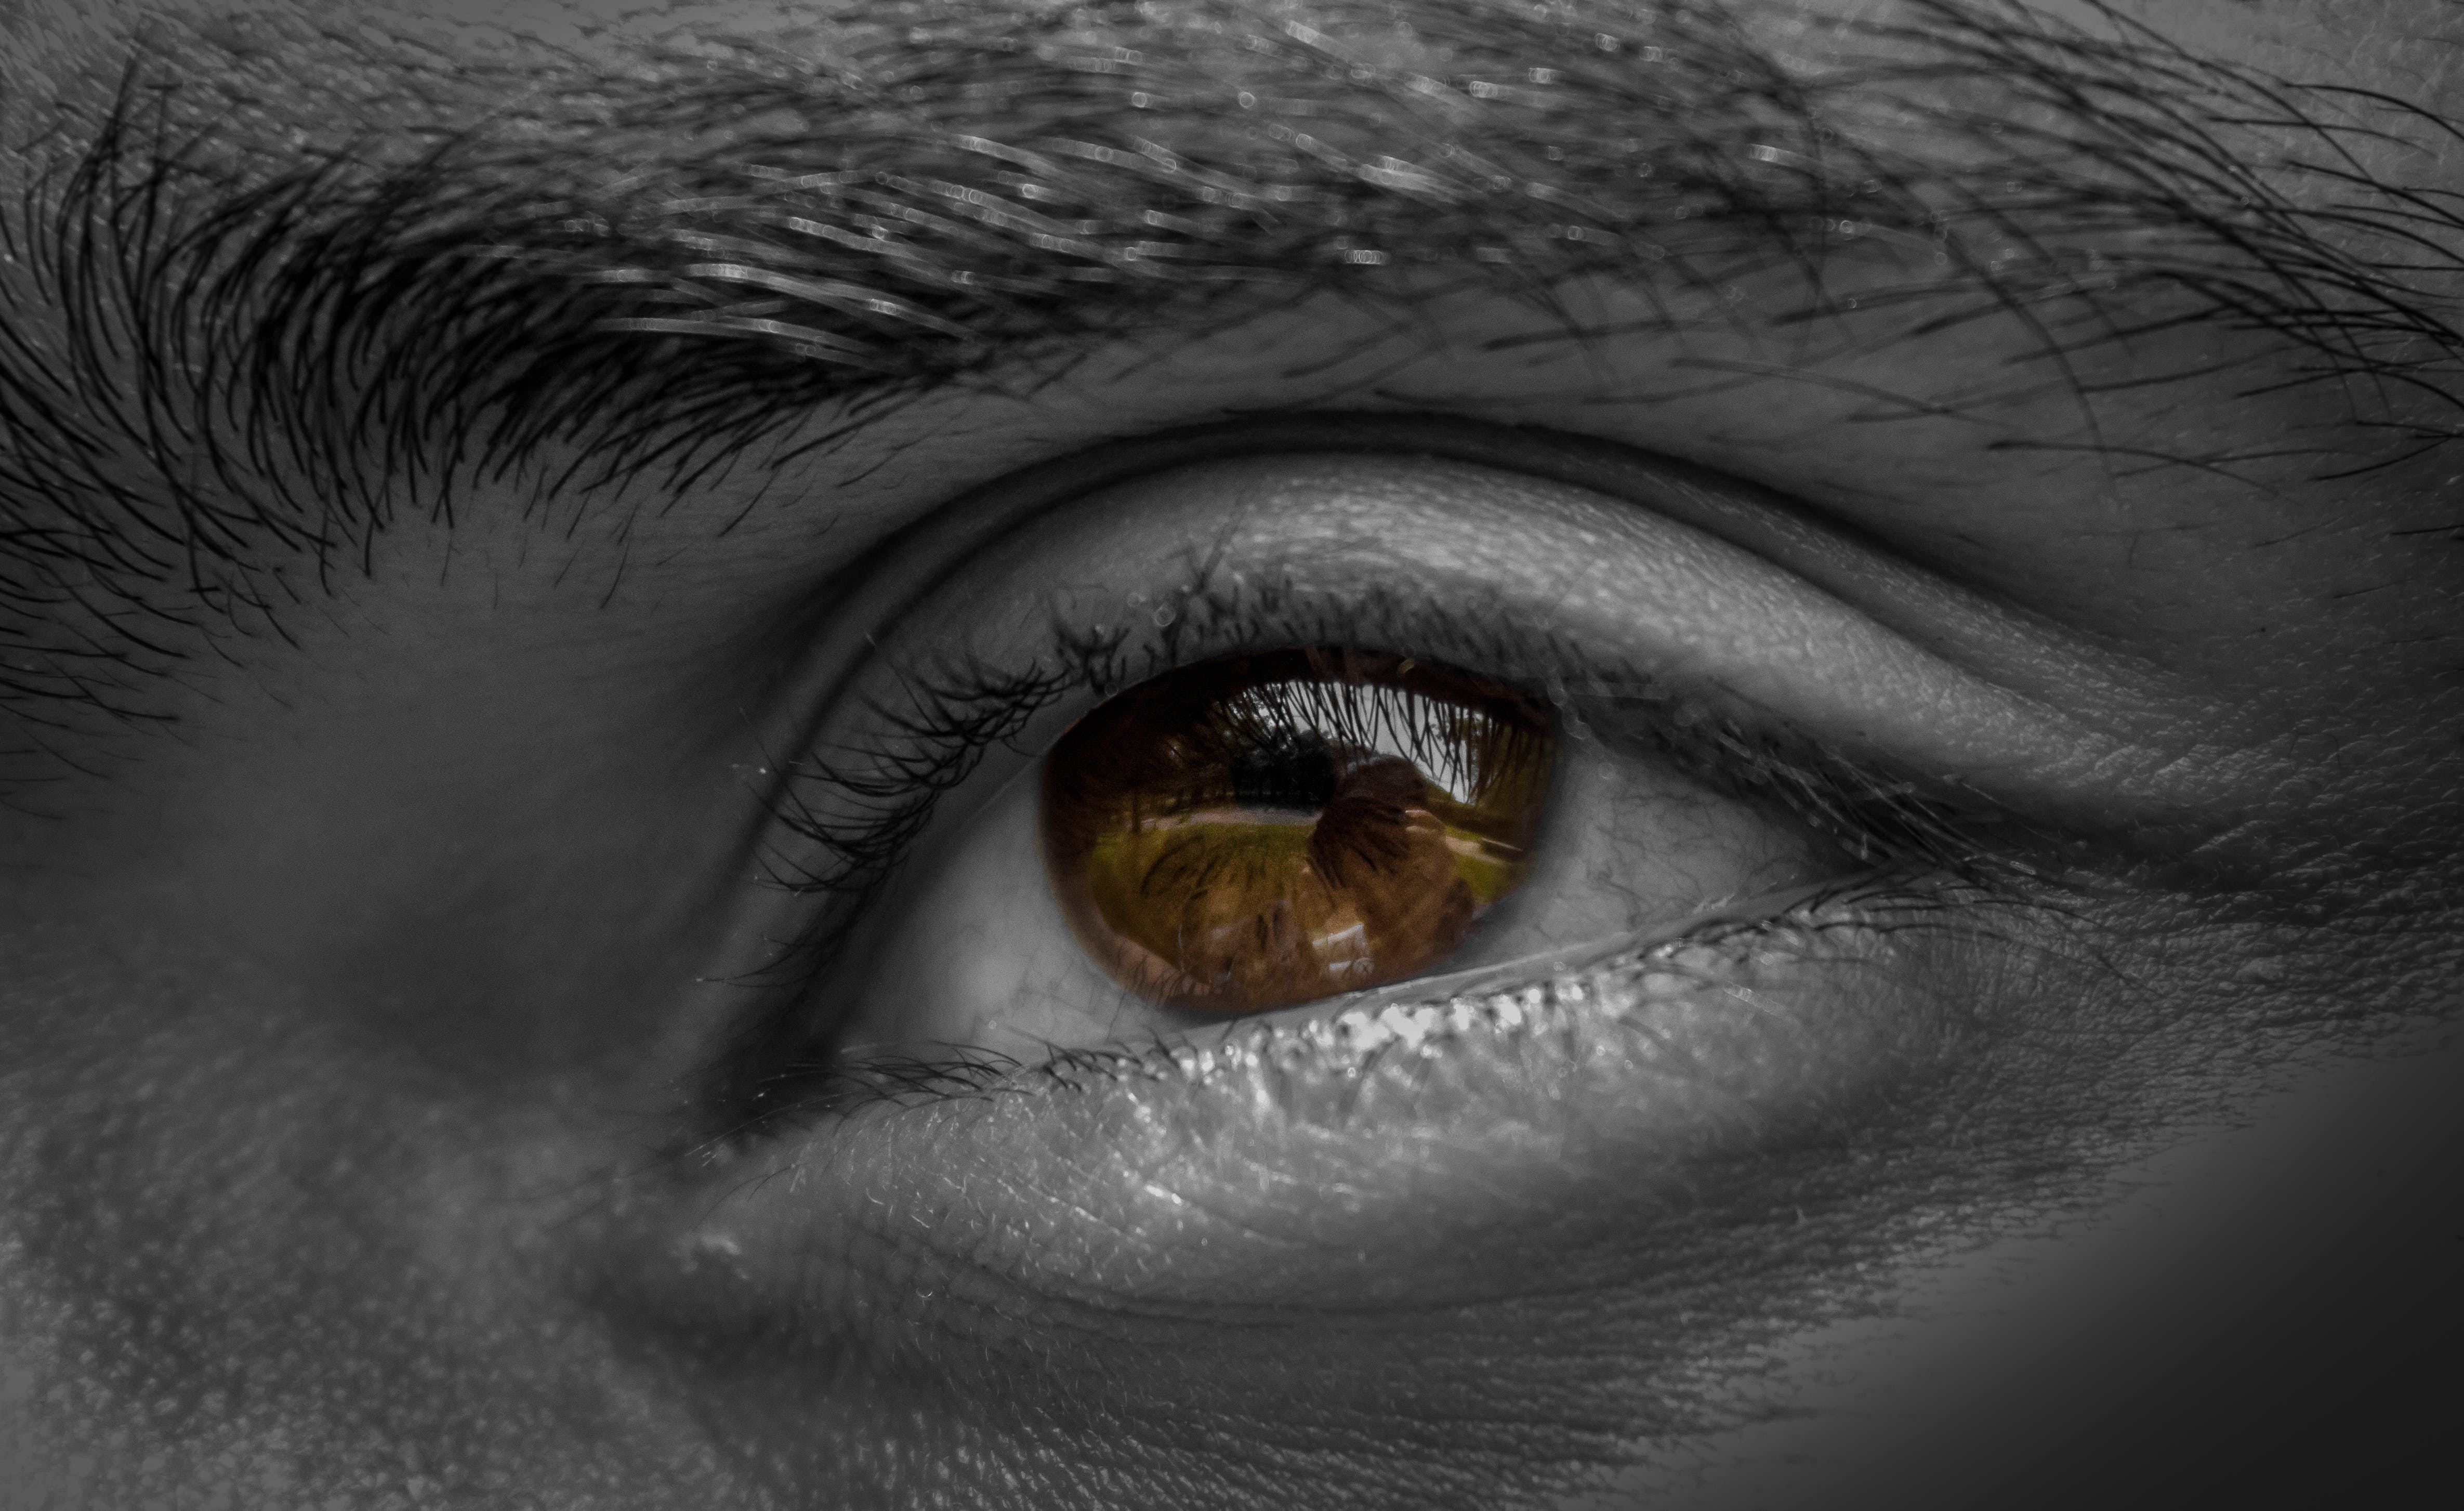 Grayscale Photography of Human Left Eye